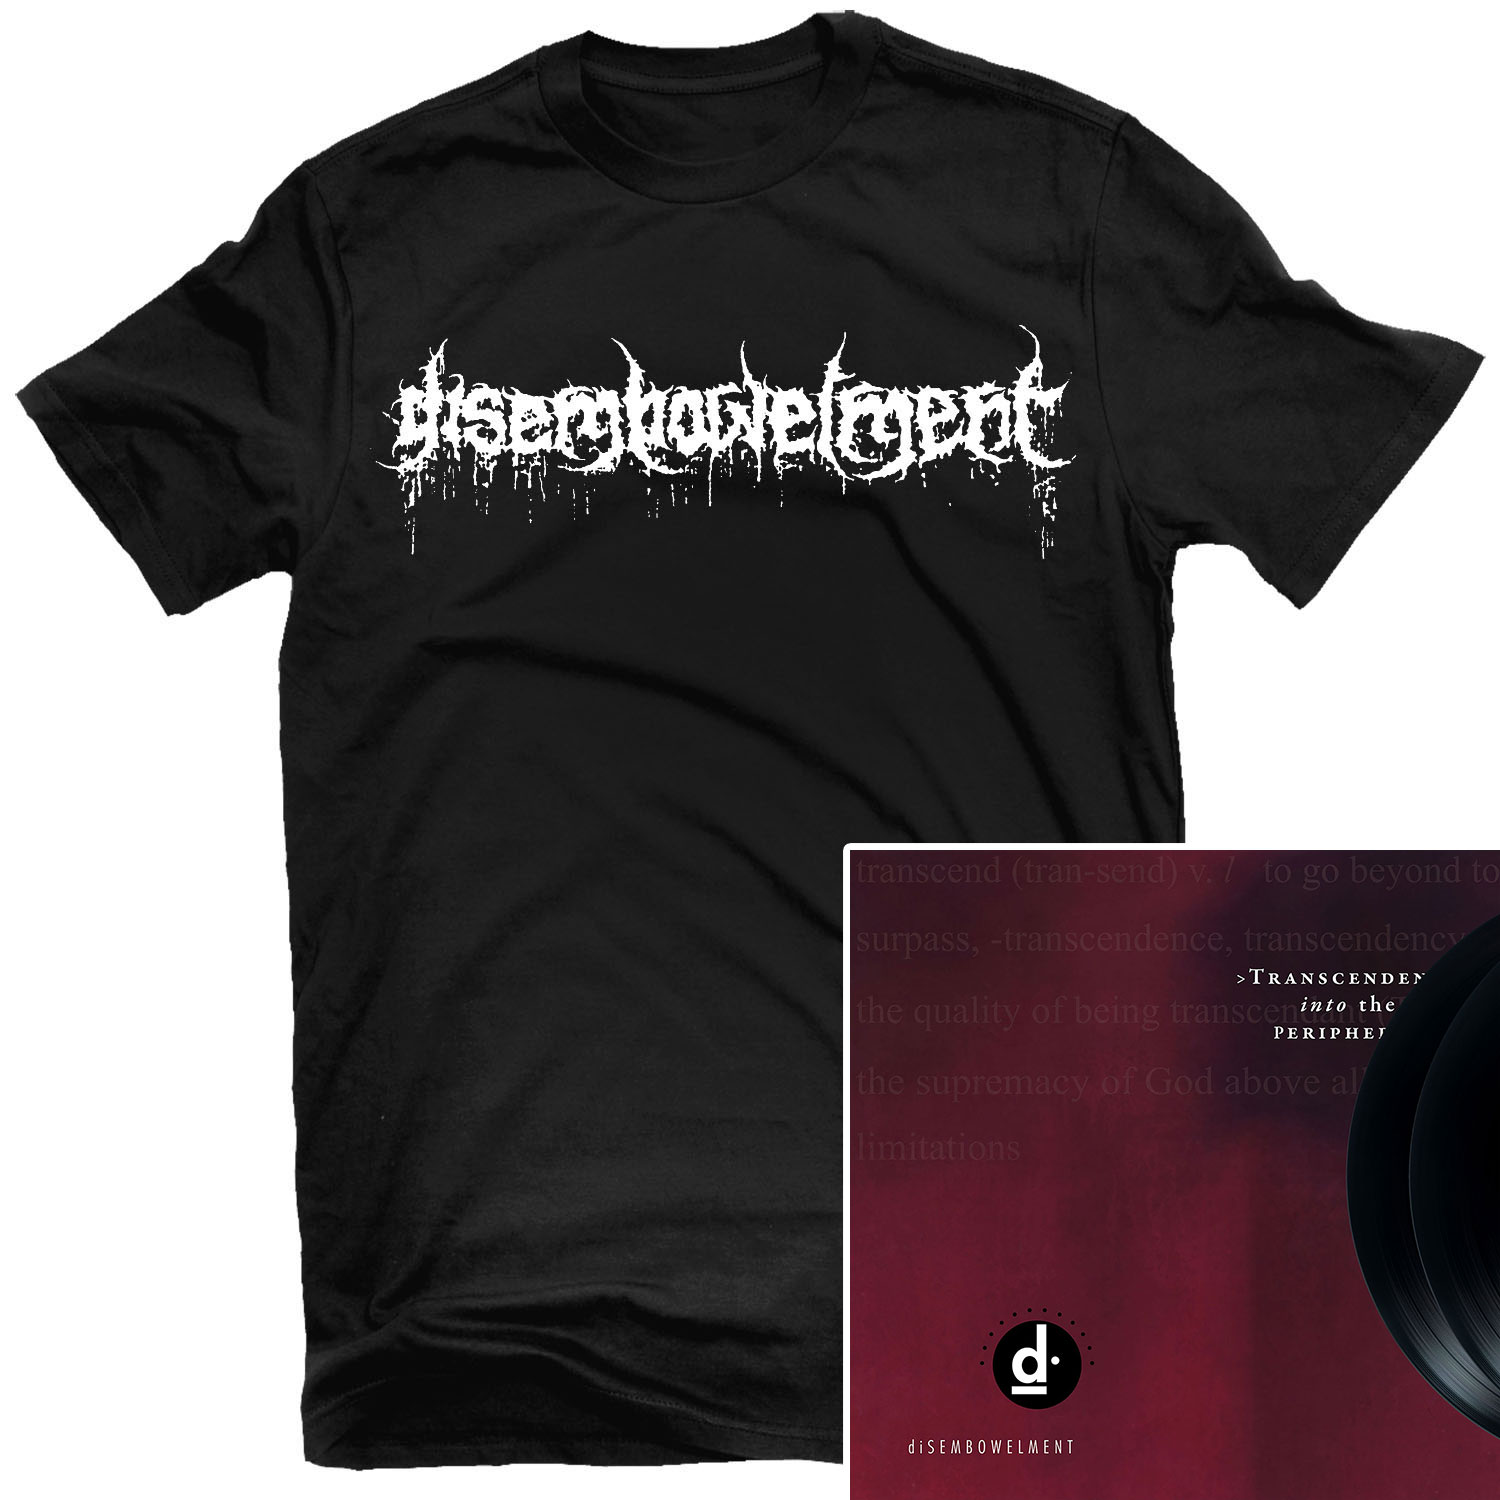 Classic Logo T Shirt + Trascendence into the Peripheral 2LP Bundle